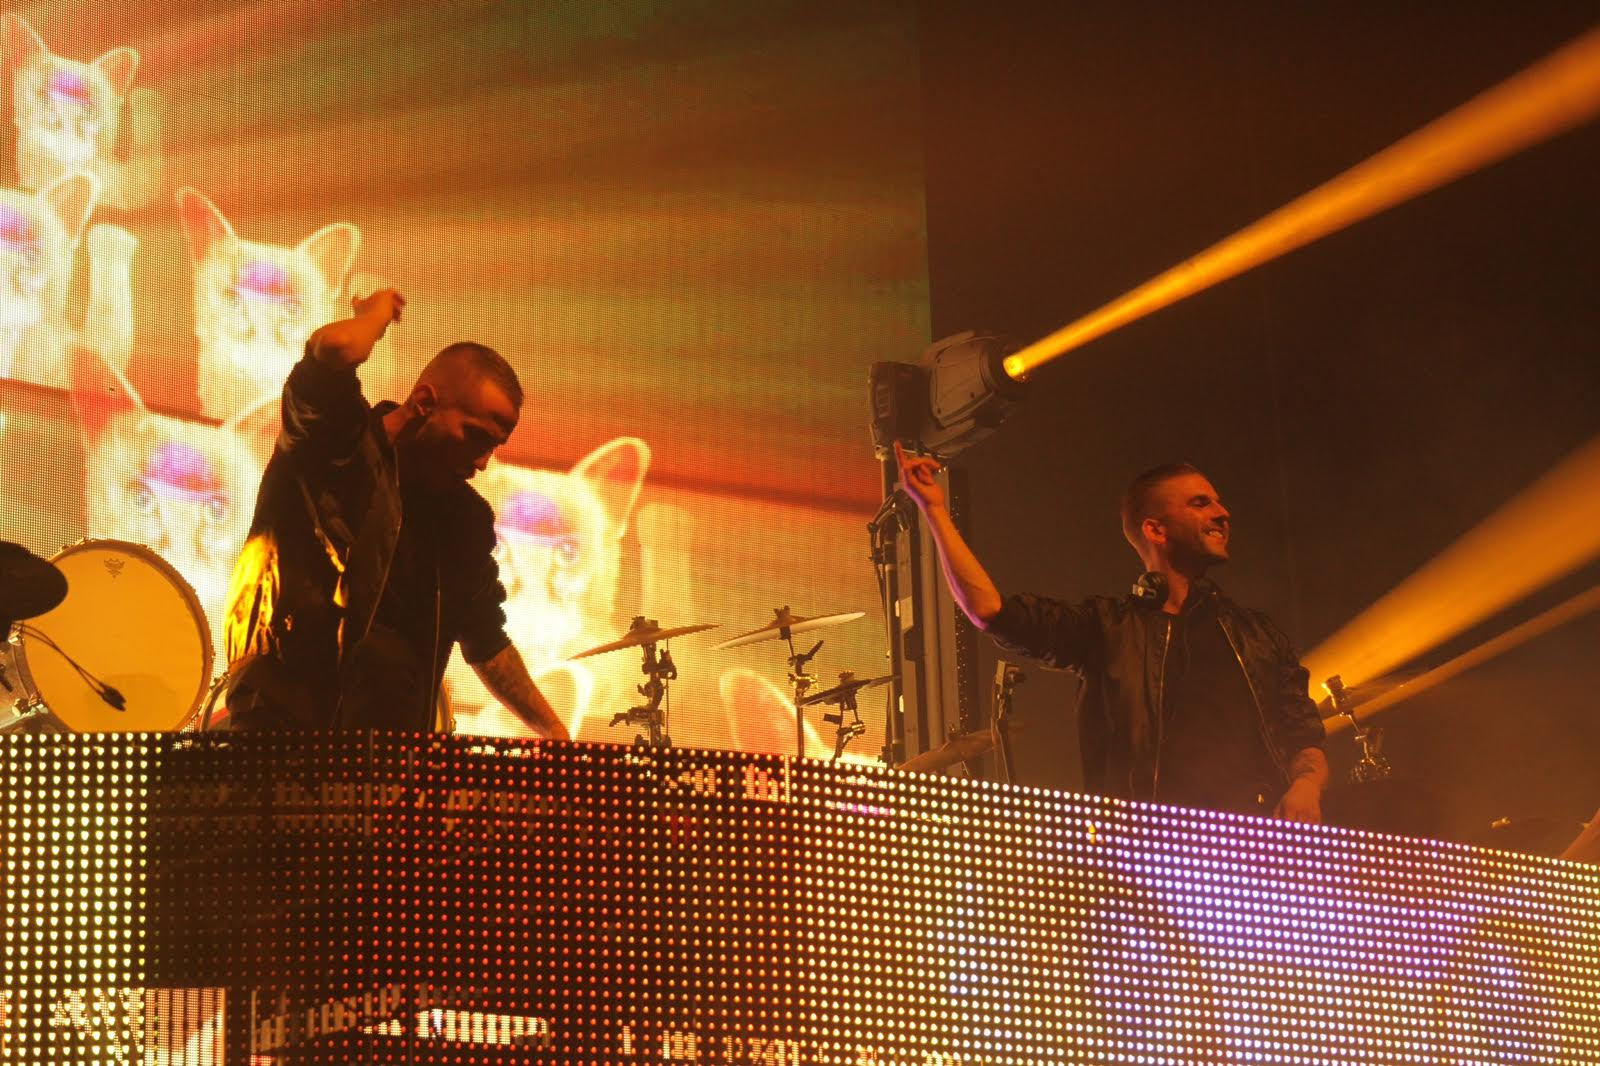 The Swedish duo Galantis brought colourful visuals and high energy to their performance at the Hammerstein Ballroom, on April 7.